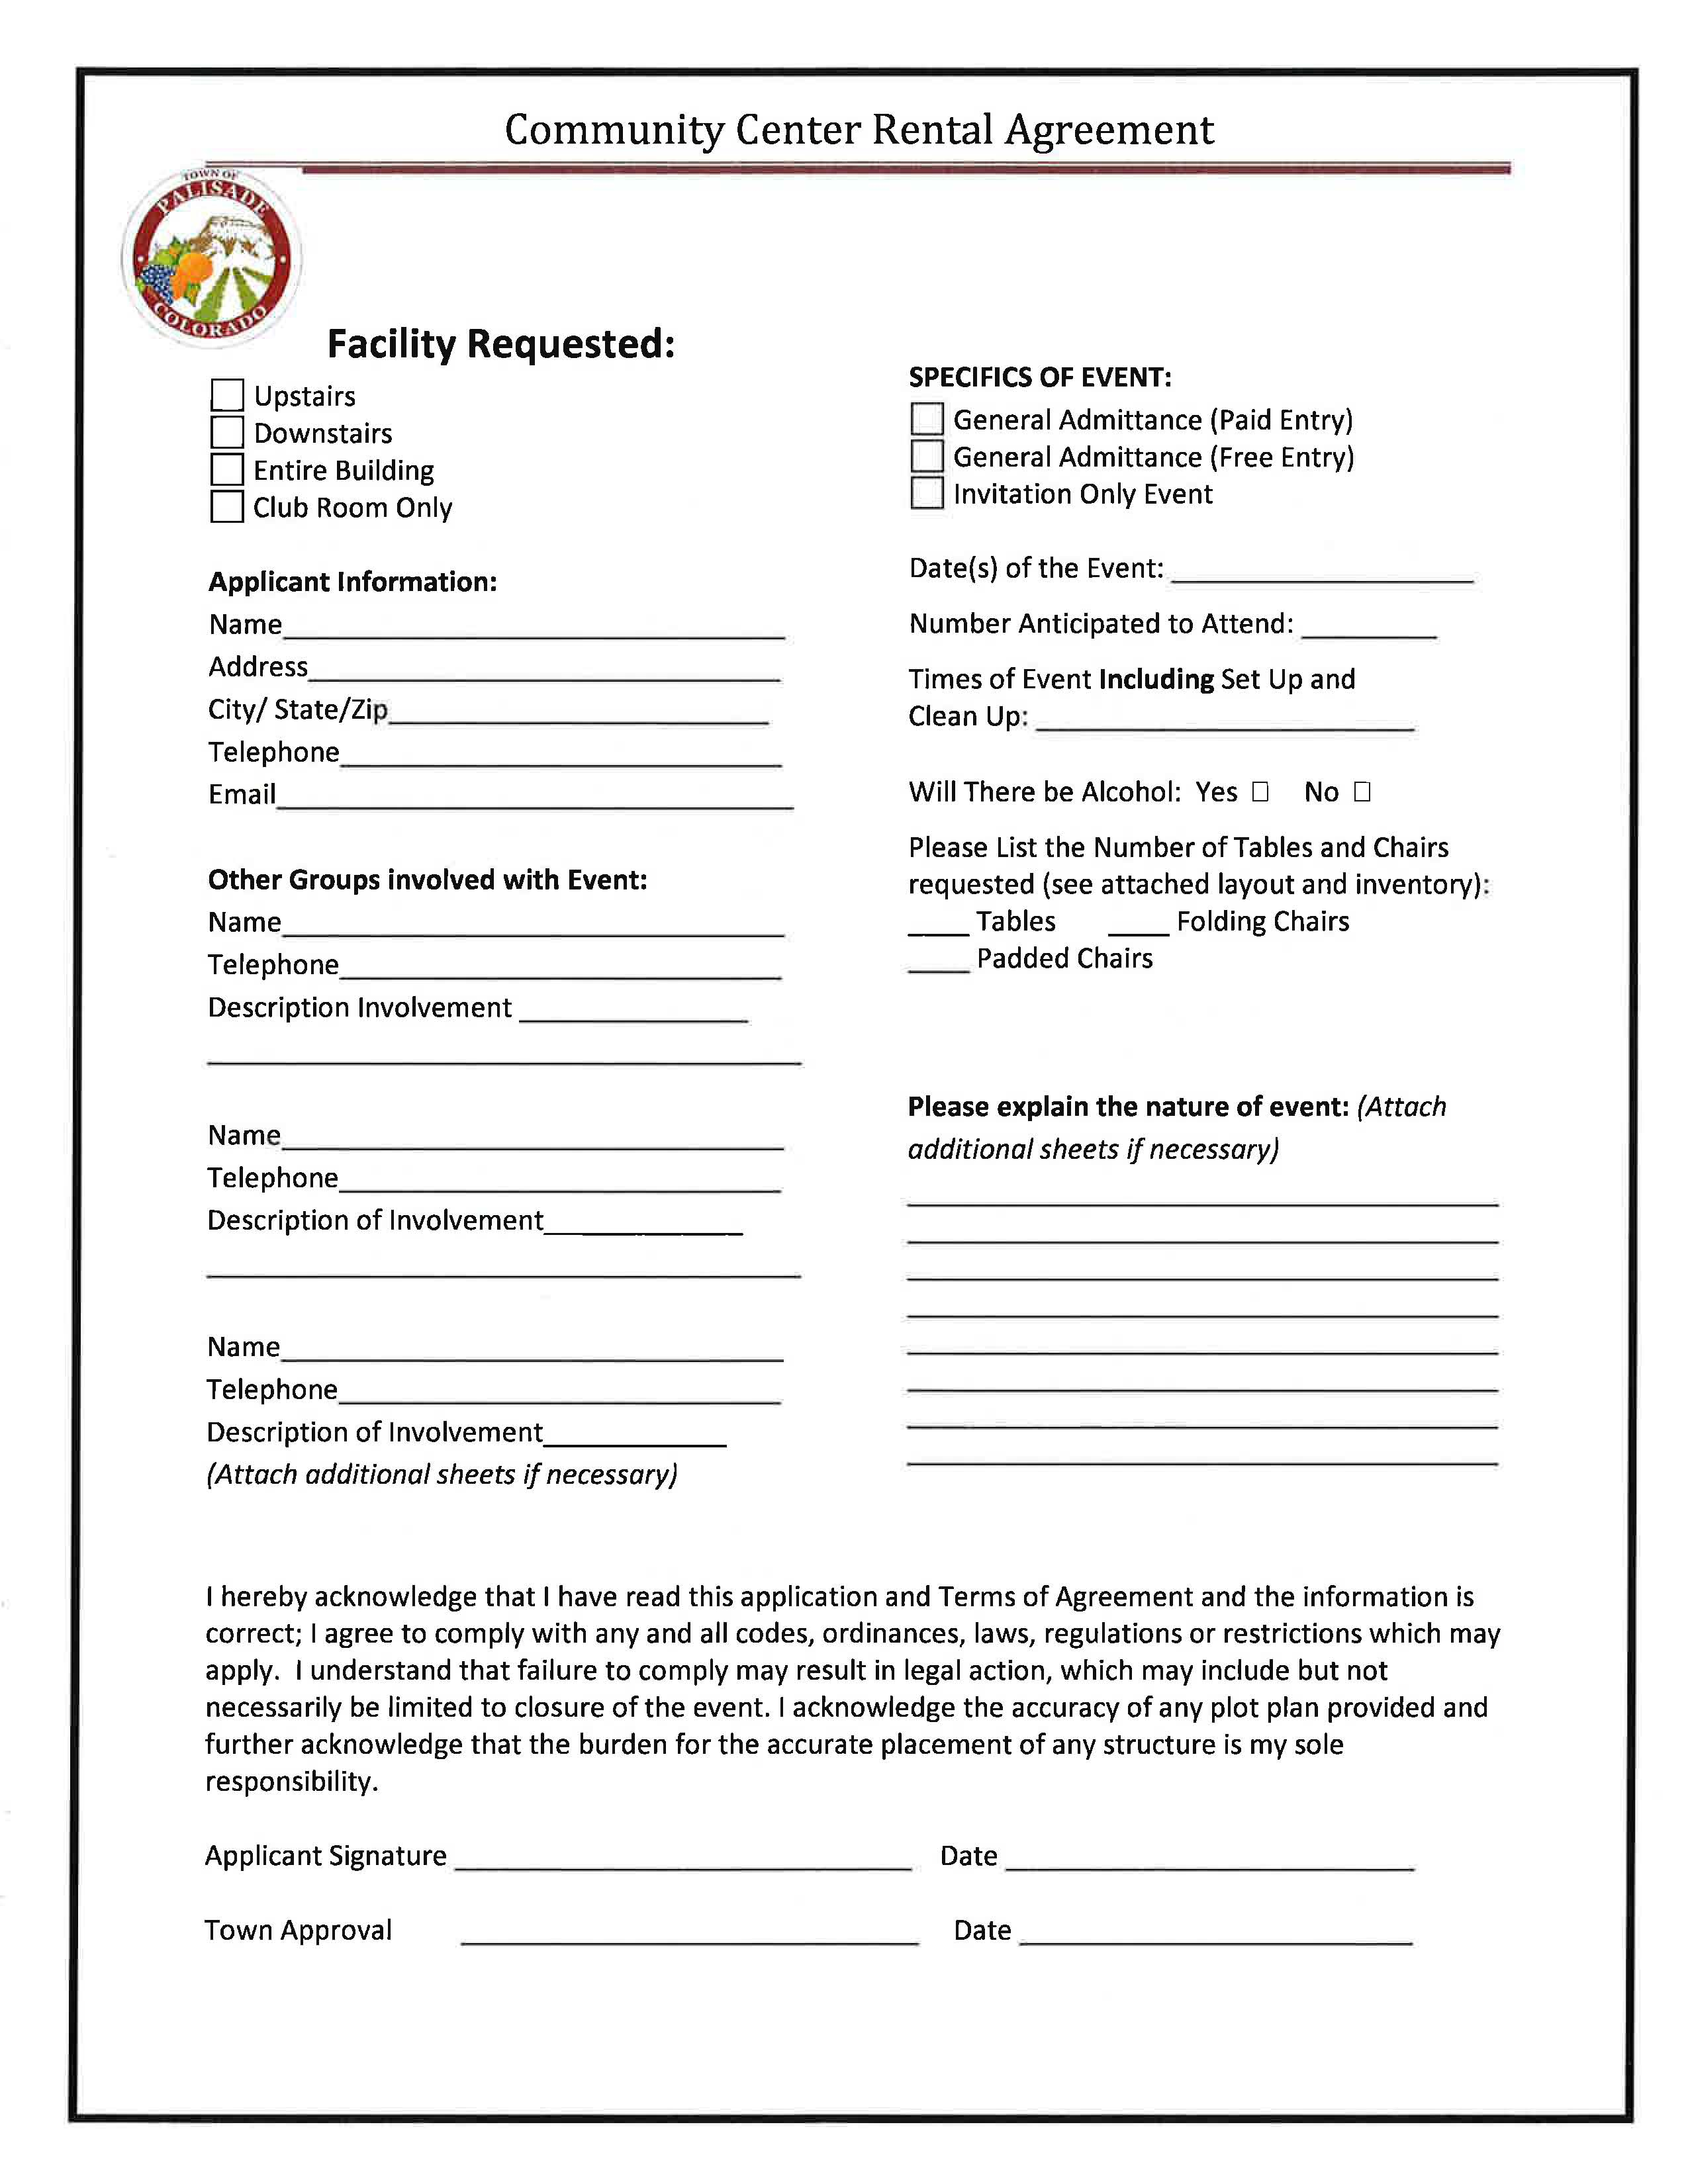 Community Center Rental Agreement Page 1